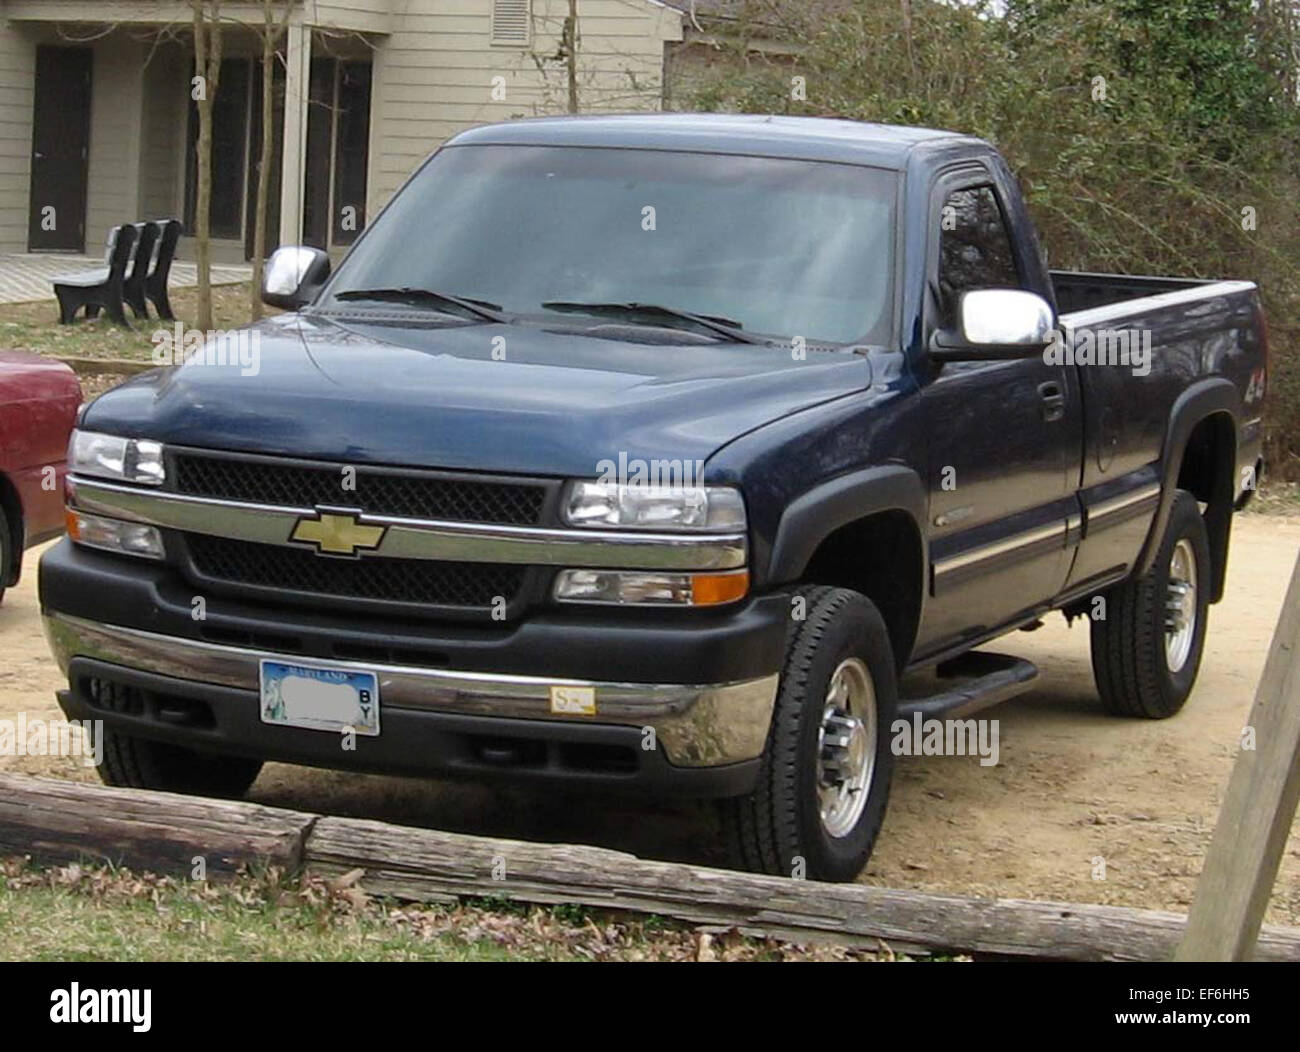 99 02 Chevrolet Silverado 2500 Stock Photo: 78206833 - Alamy